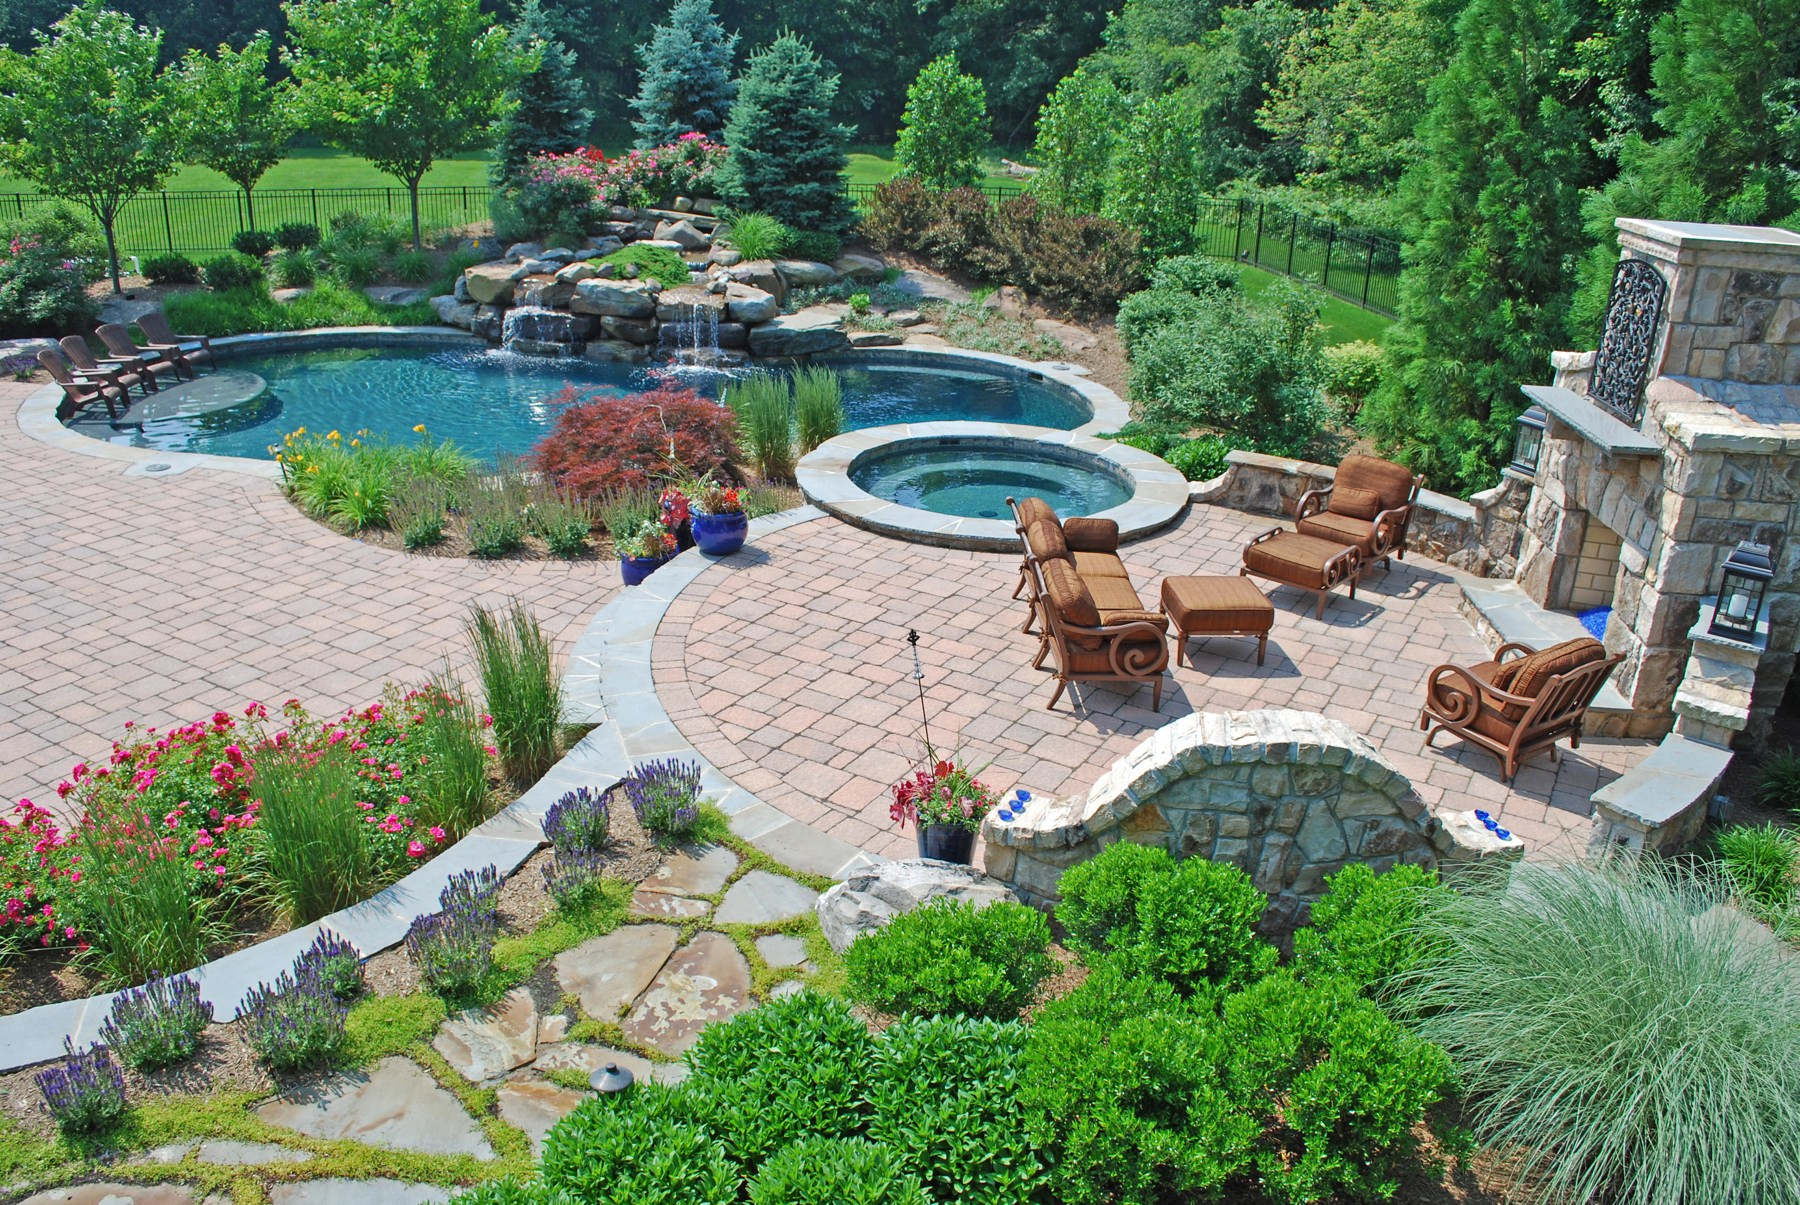 How to find a landscape company that is right for you